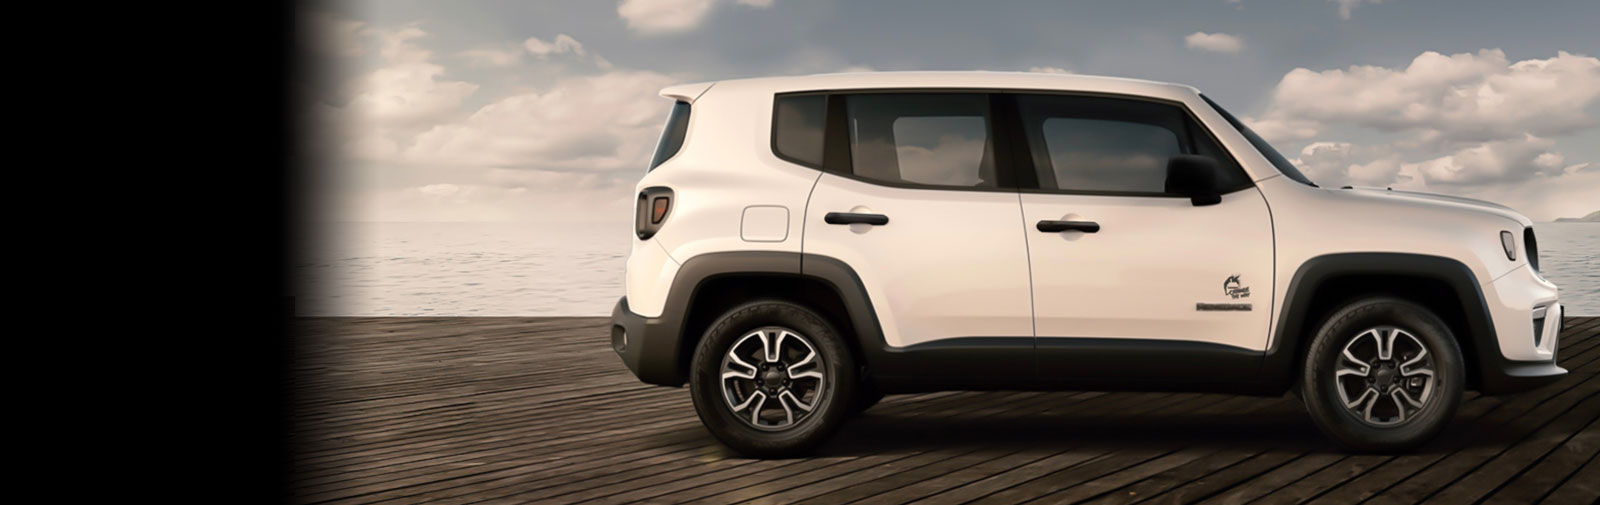 jeep-renegade-change-the-way